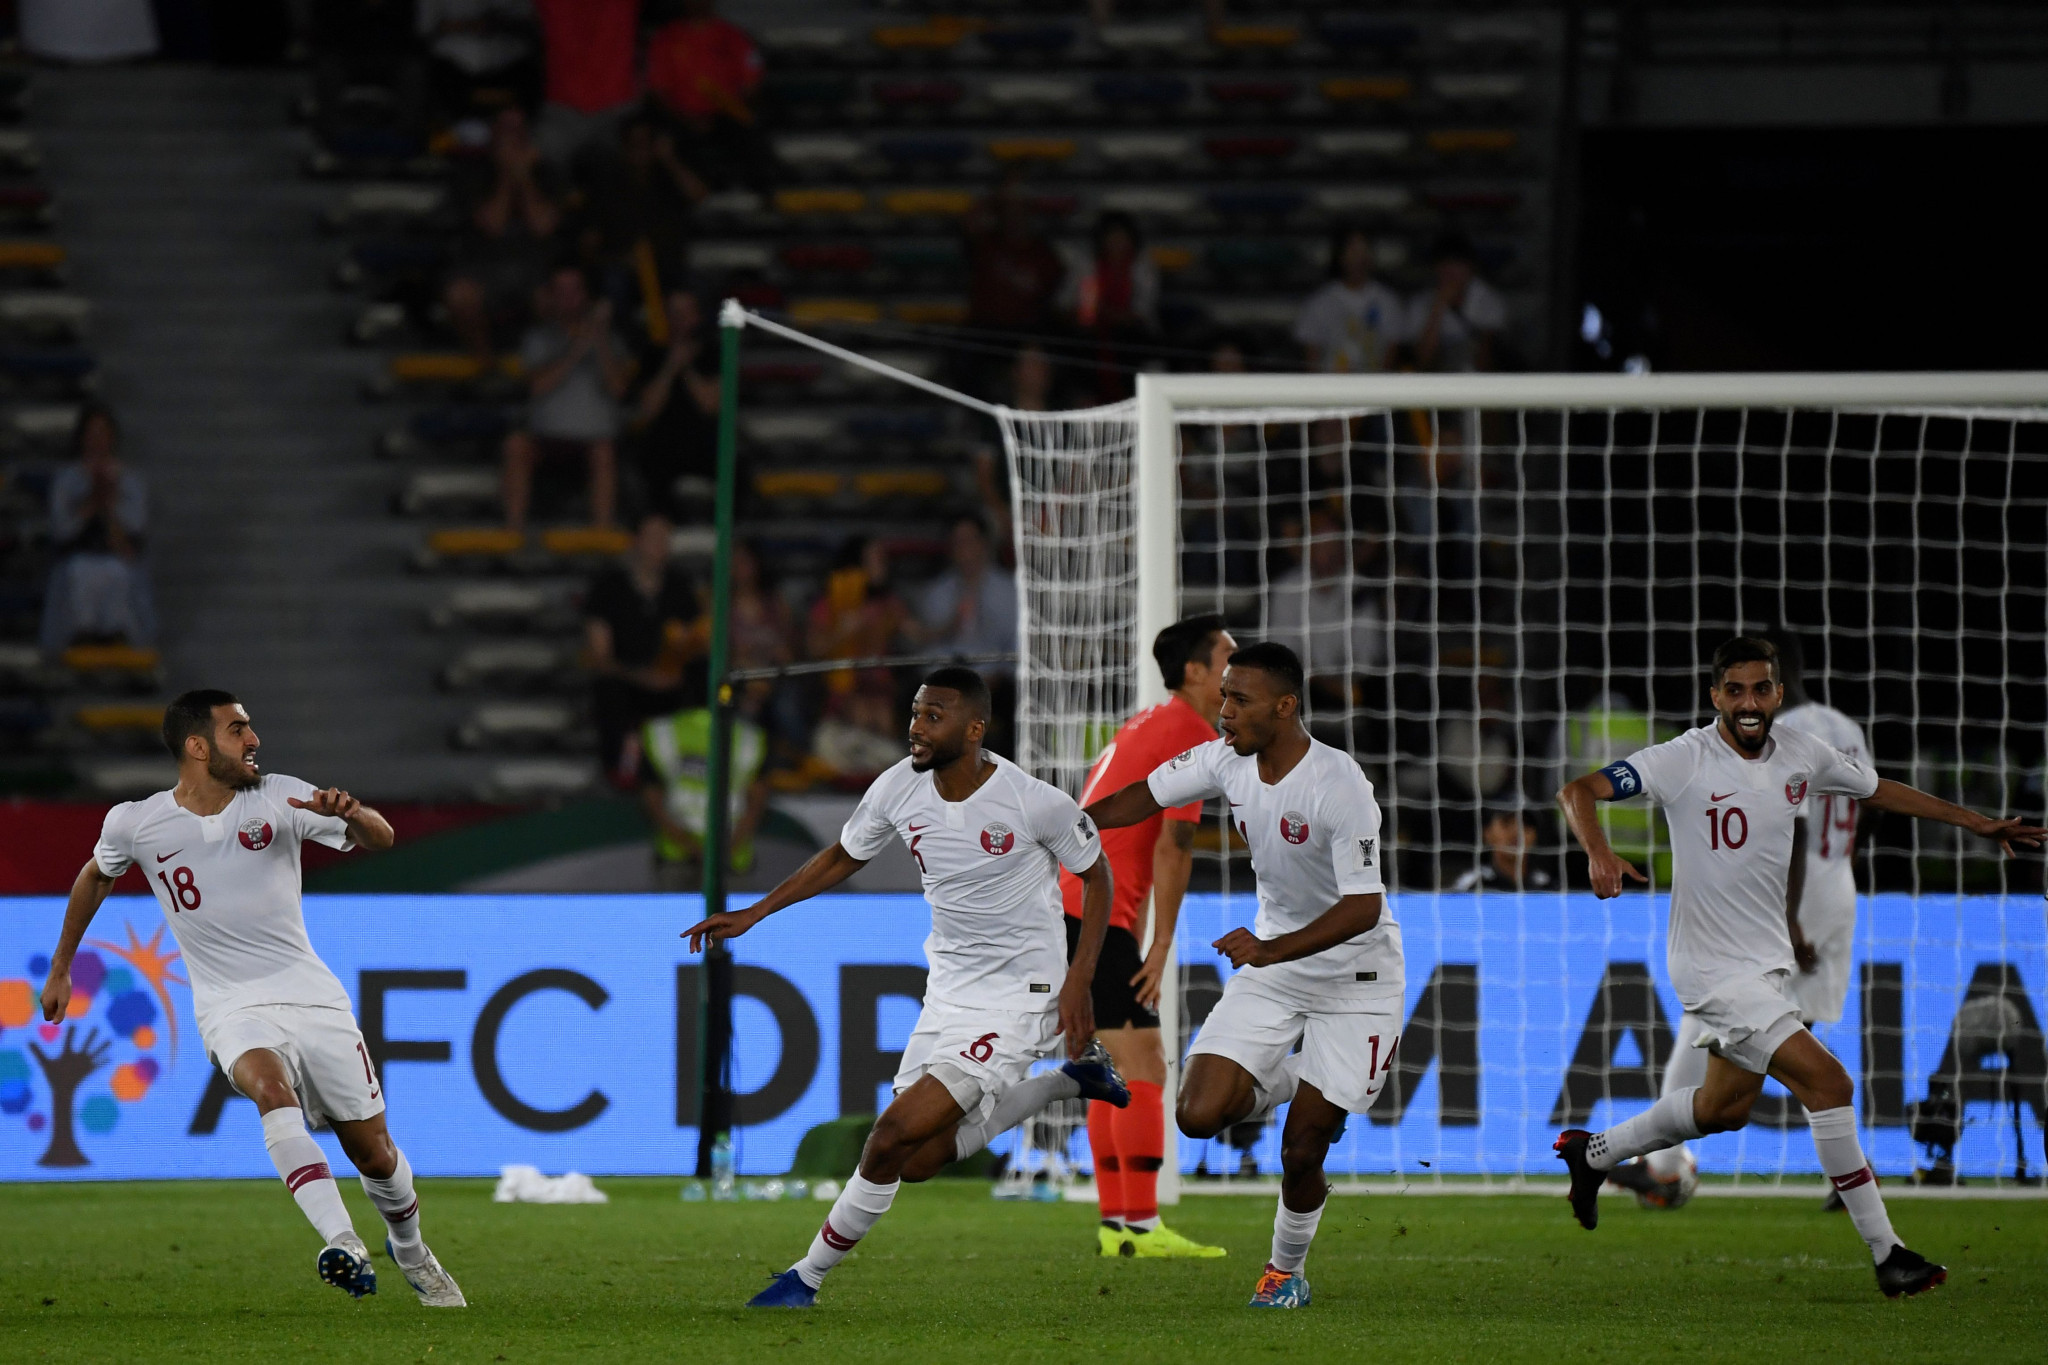 Qatar and United Arab Emirates shock favourites to set up politically charged AFC Asian Cup semi-final